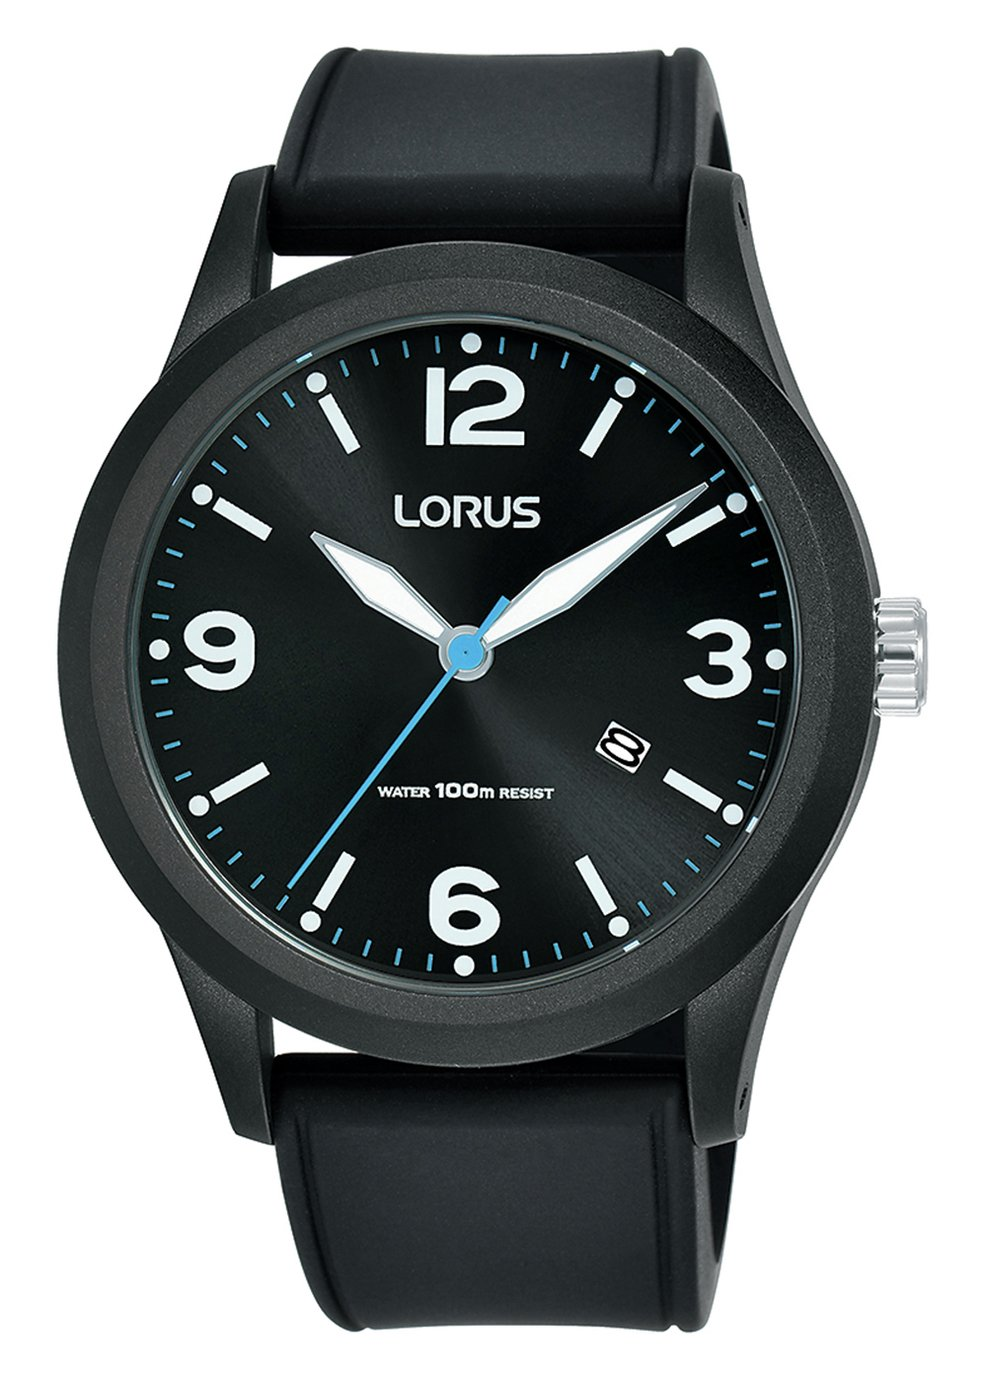 Lorus Men's Black Silicone Strap Watch